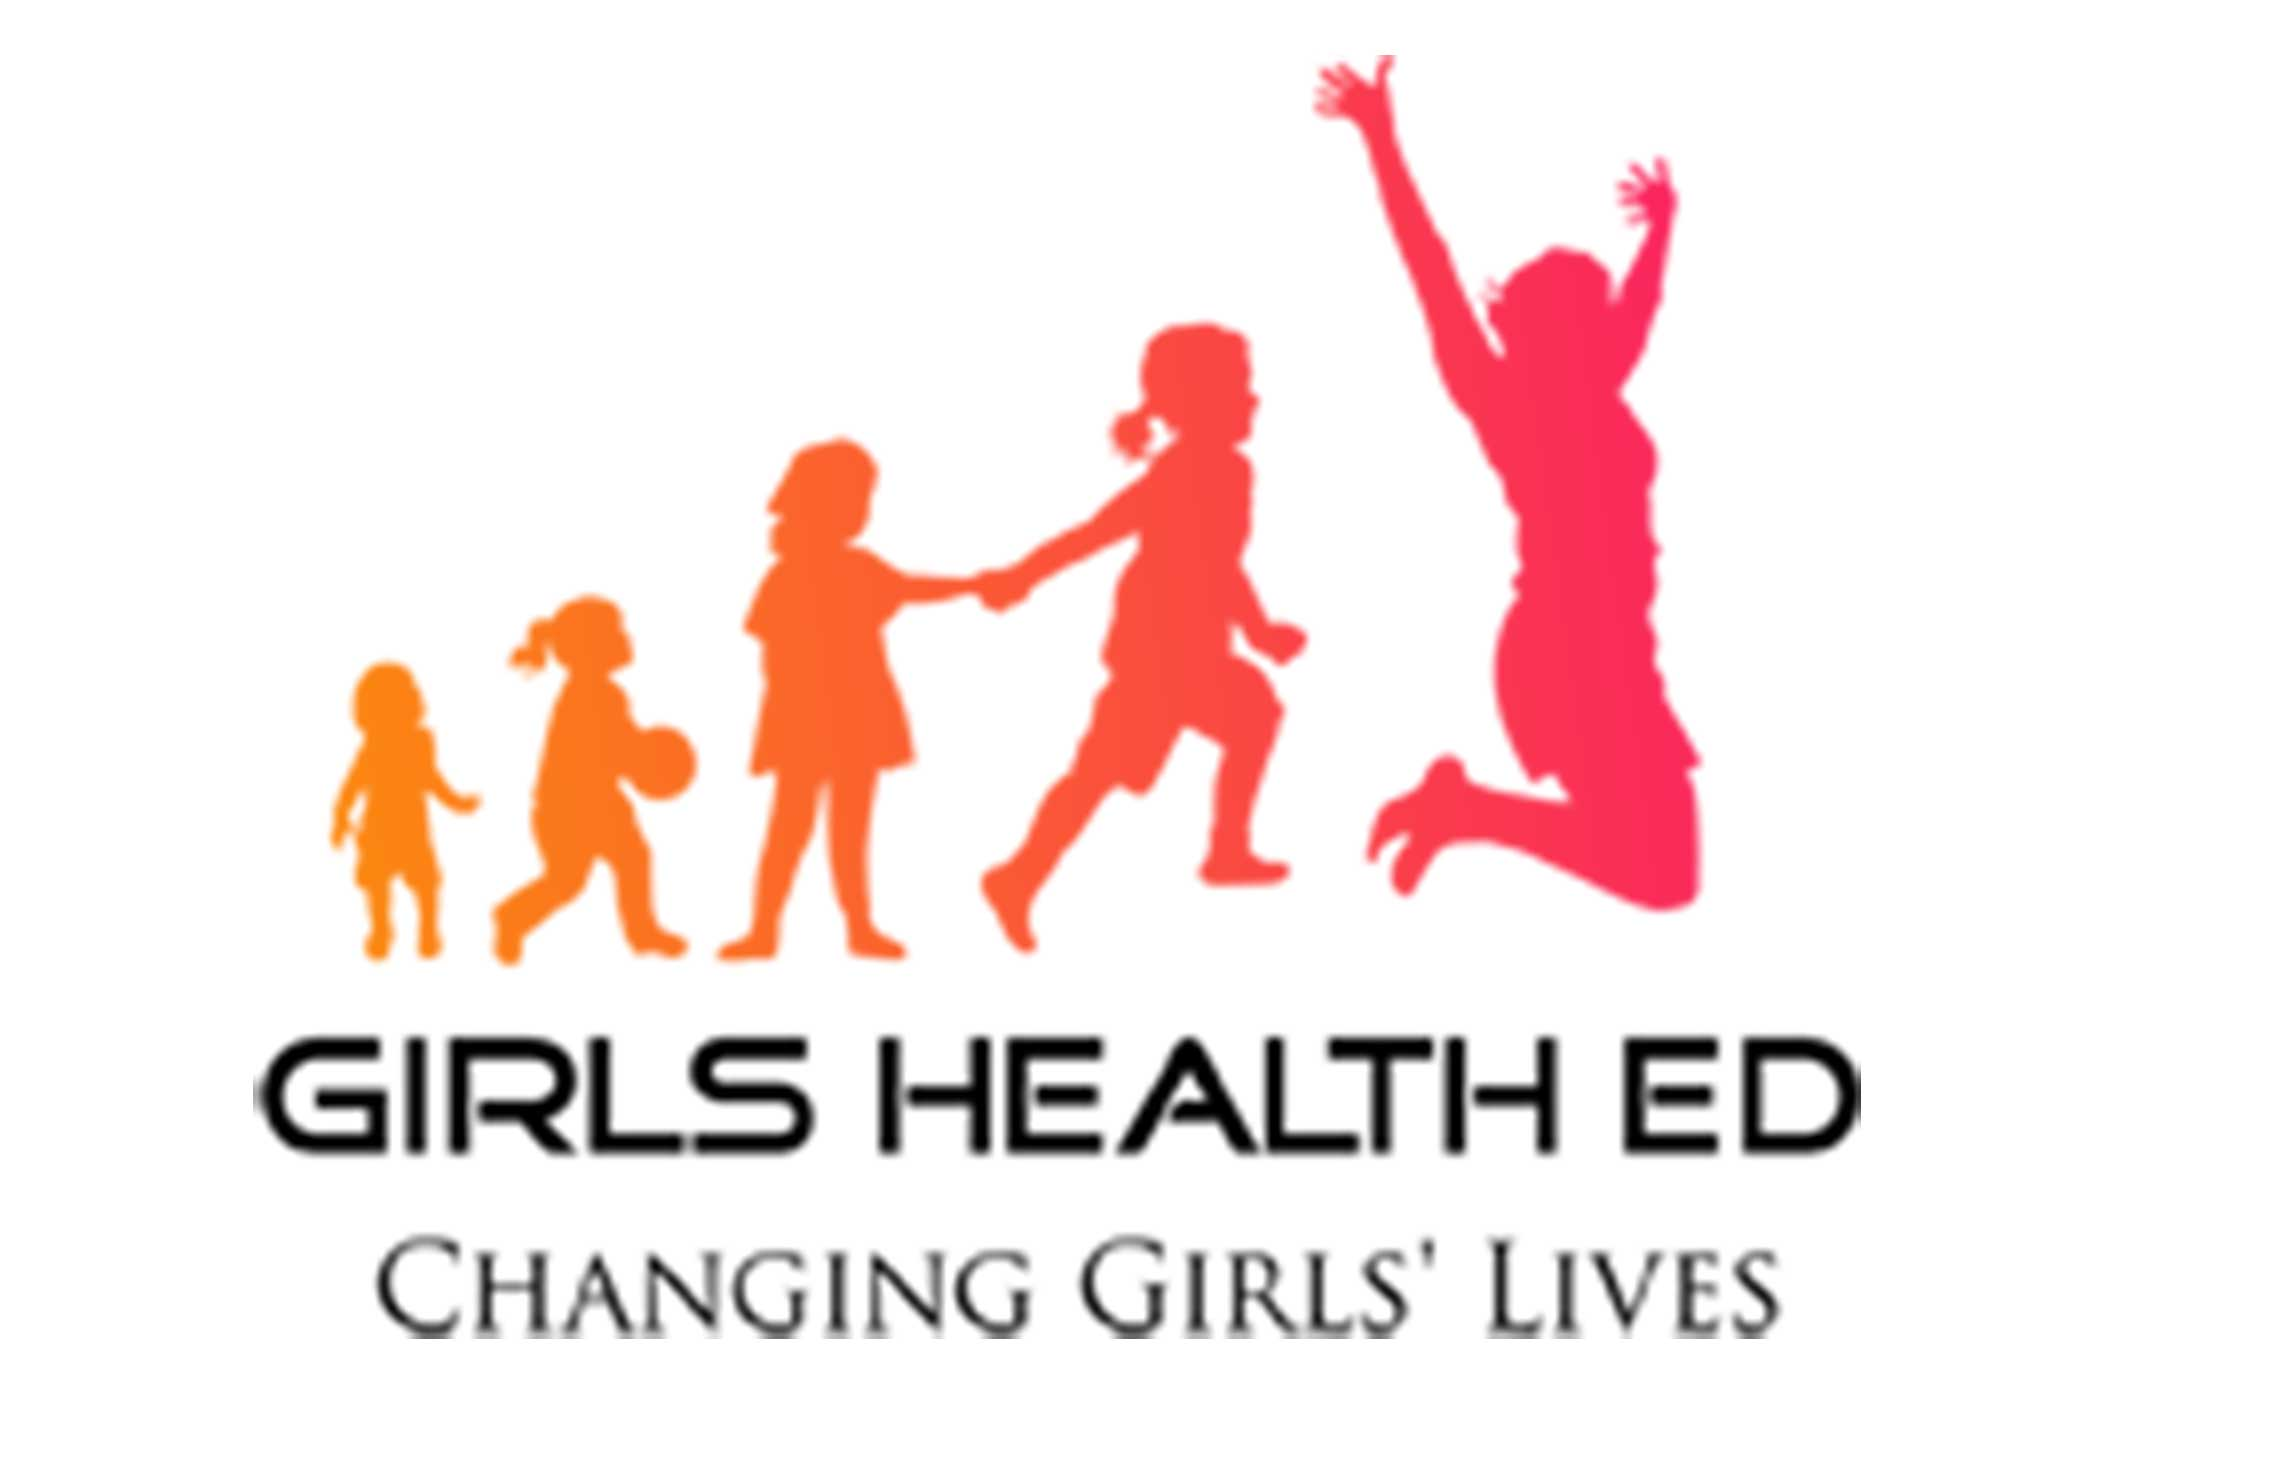 Girls Health Ed Building Partnerships To Provide Health Education Access For Adolescent Girls Missionbox